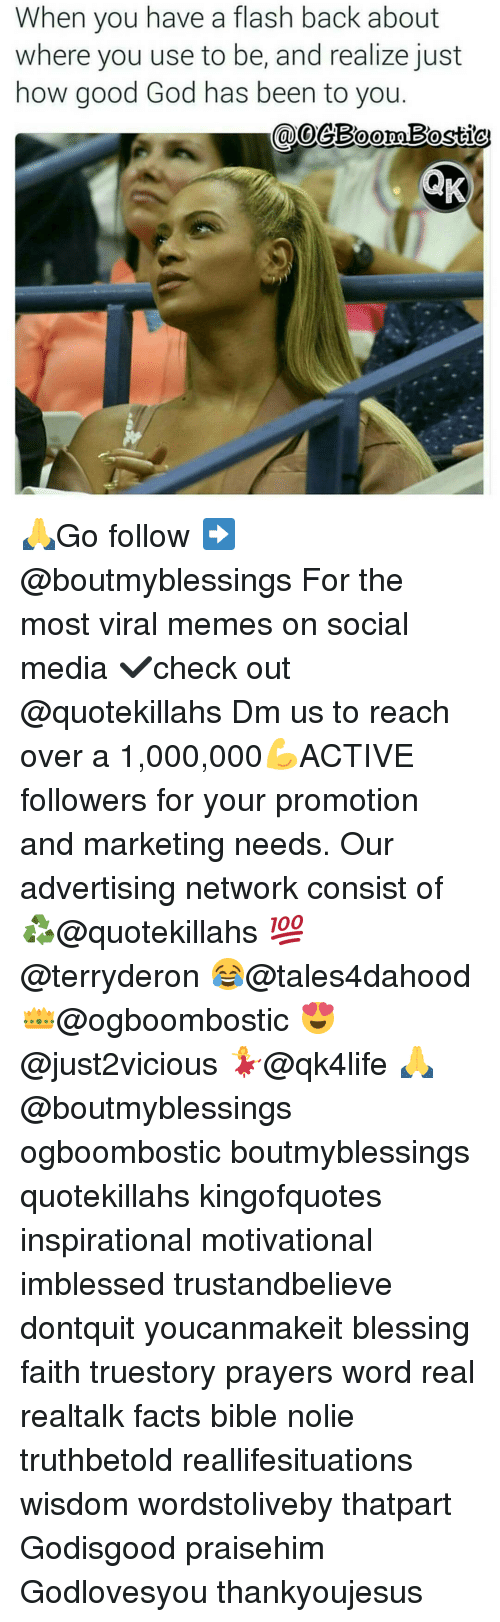 Memes, 🤖, and Flash: When you have a flash back about  where you use to be, and realize just  how good God has been to you.  CaloeBoomBosticu 🙏Go follow ➡@boutmyblessings For the most viral memes on social media ✔check out @quotekillahs Dm us to reach over a 1,000,000💪ACTIVE followers for your promotion and marketing needs. Our advertising network consist of ♻@quotekillahs 💯@terryderon 😂@tales4dahood 👑@ogboombostic 😍@just2vicious 💃@qk4life 🙏@boutmyblessings ogboombostic boutmyblessings quotekillahs kingofquotes inspirational motivational imblessed trustandbelieve dontquit youcanmakeit blessing faith truestory prayers word real realtalk facts bible nolie truthbetold reallifesituations wisdom wordstoliveby thatpart Godisgood praisehim Godlovesyou thankyoujesus